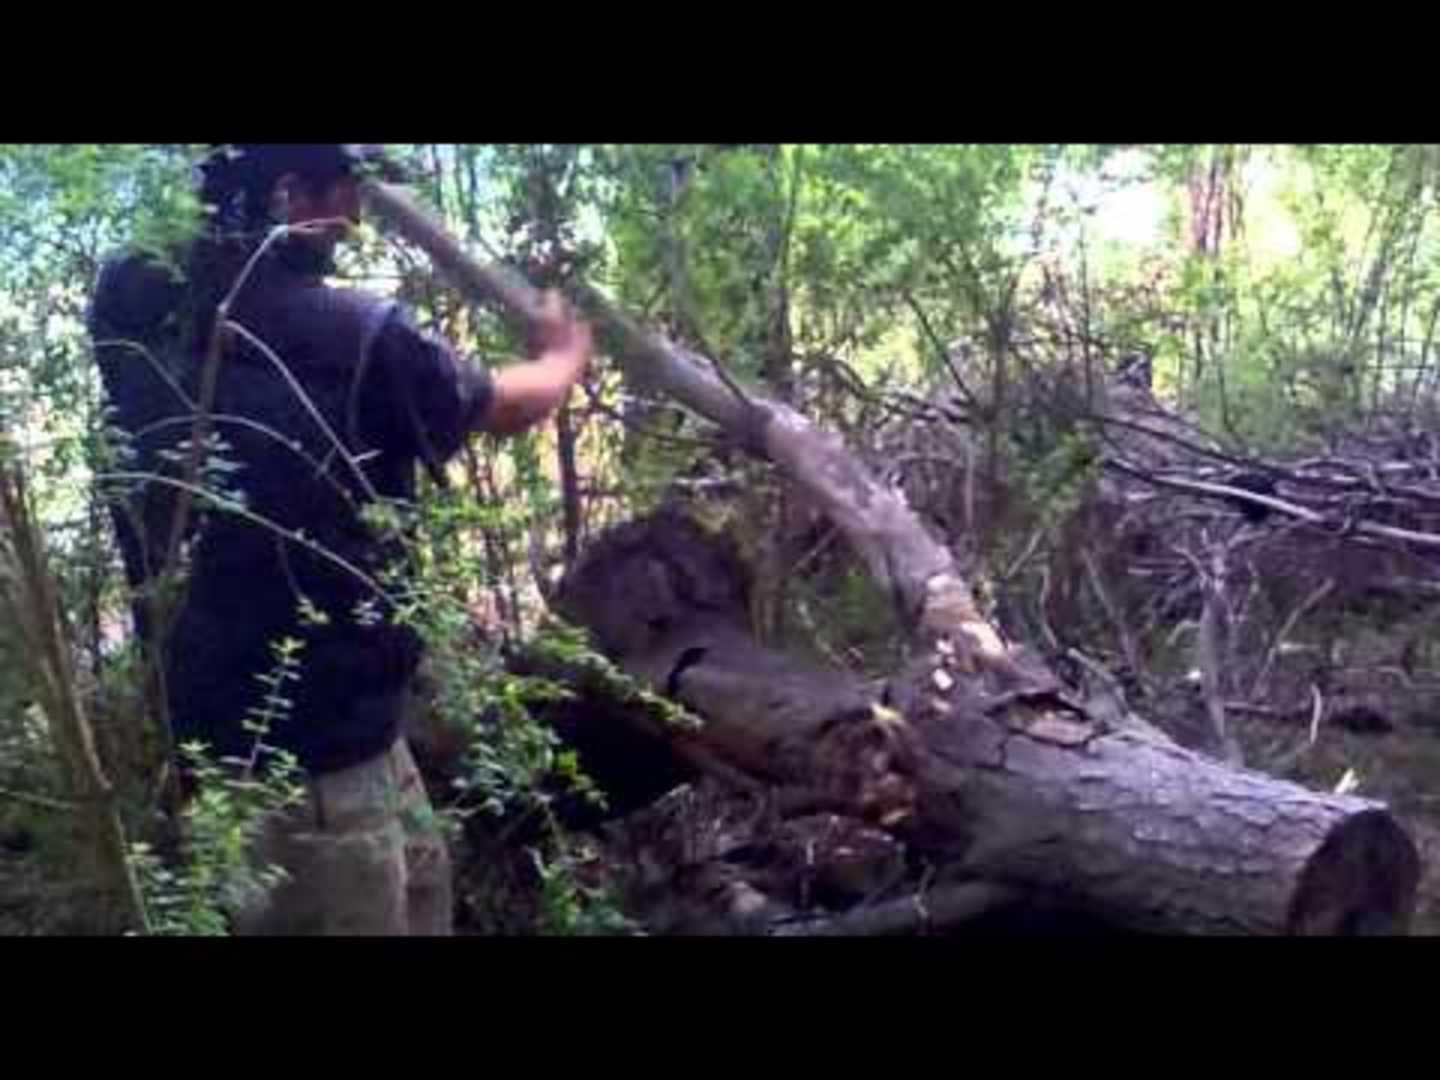 Guy Runs into Forest after Falling off Tree